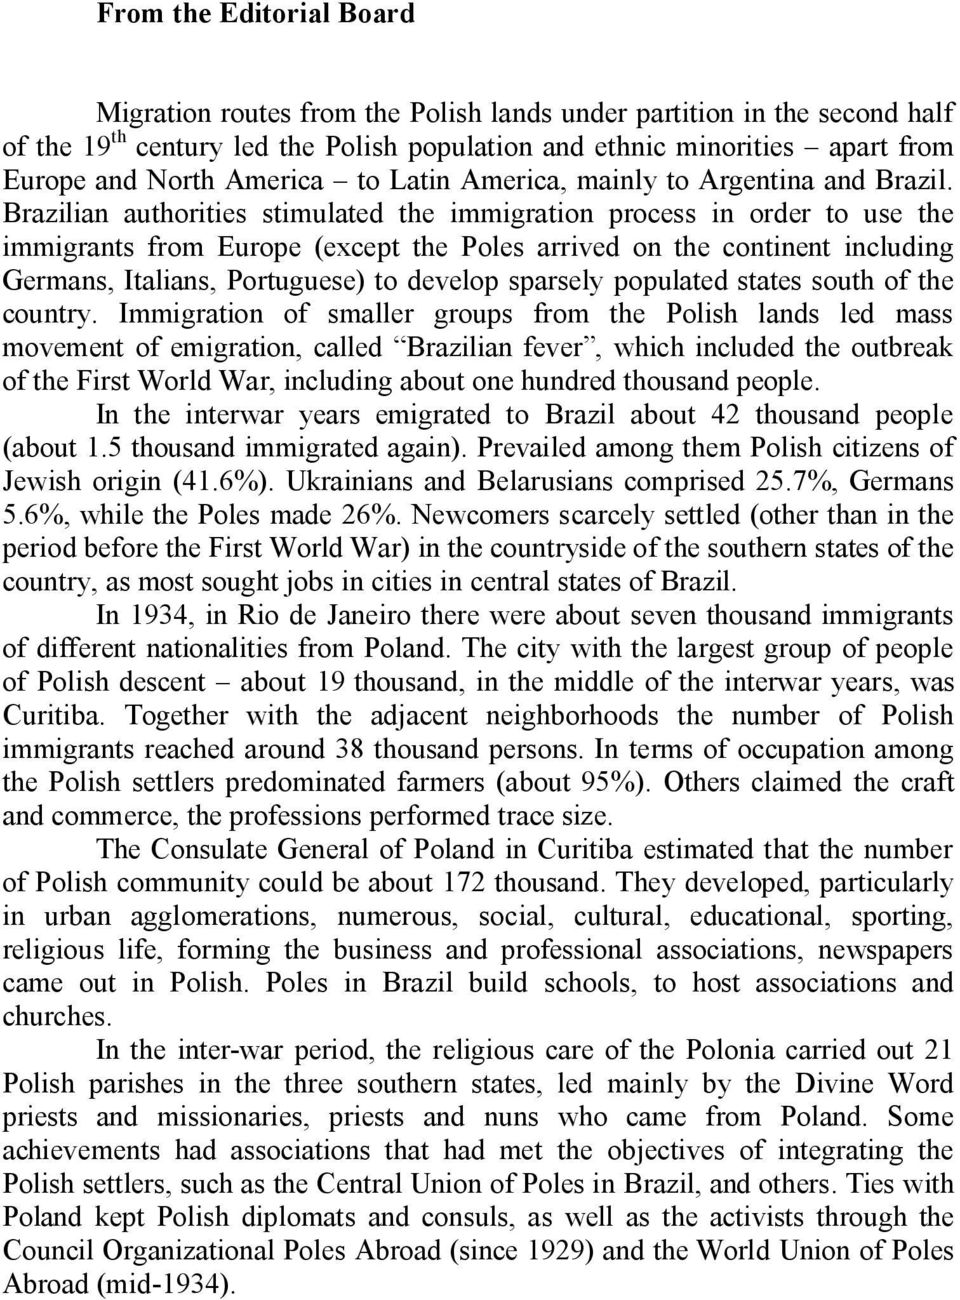 Brazilian authorities stimulated the immigration process in order to use the immigrants from Europe (except the Poles arrived on the continent including Germans, Italians, Portuguese) to develop